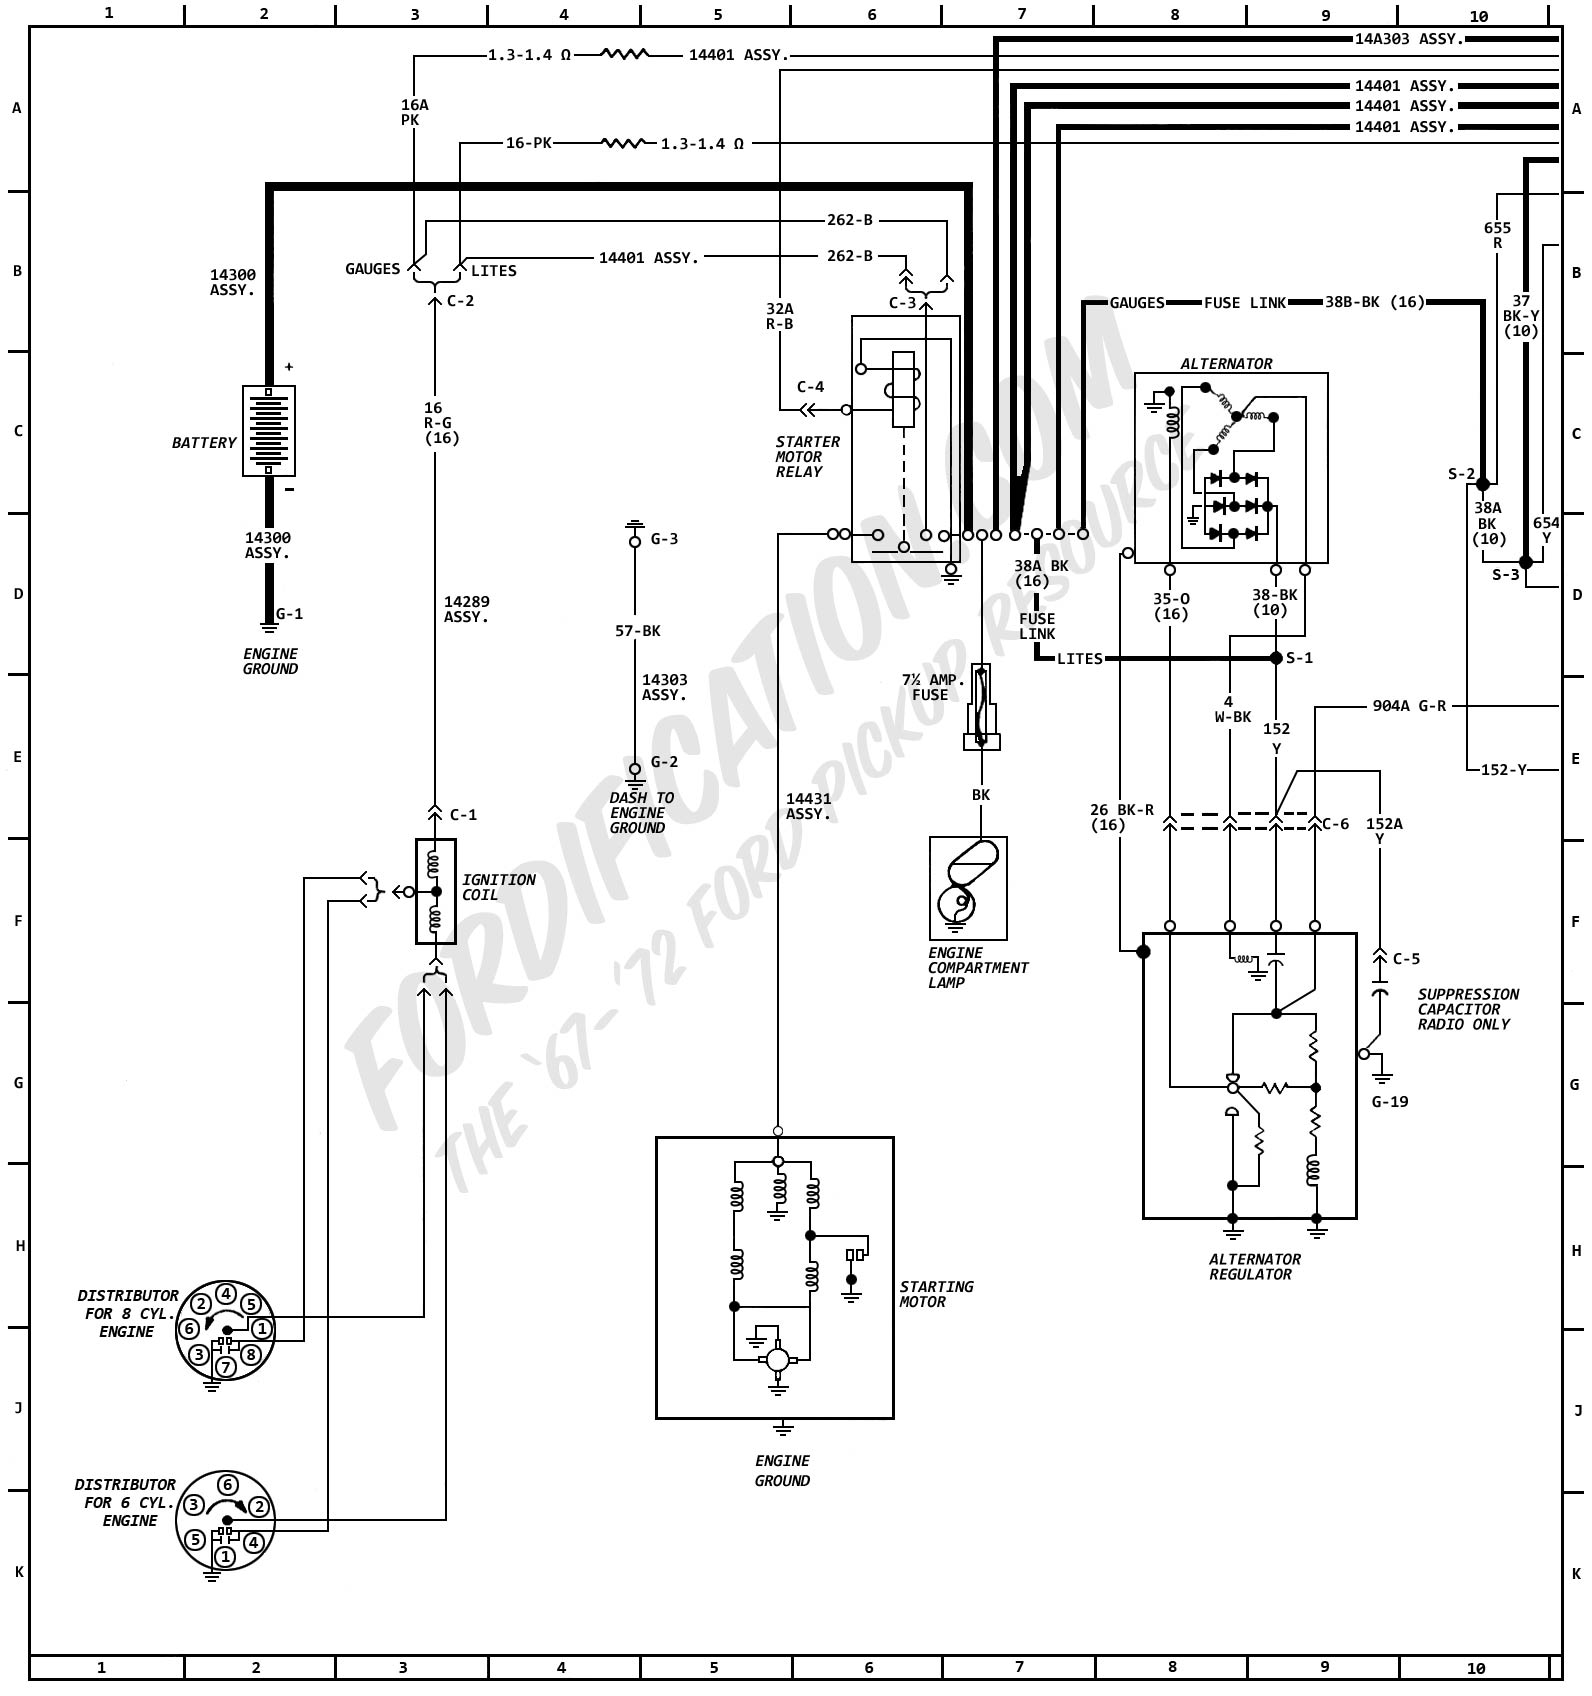 1972MasterWiring_01 1972 ford truck wiring diagrams fordification com 85 Ford Alternator Wiring Diagram at edmiracle.co